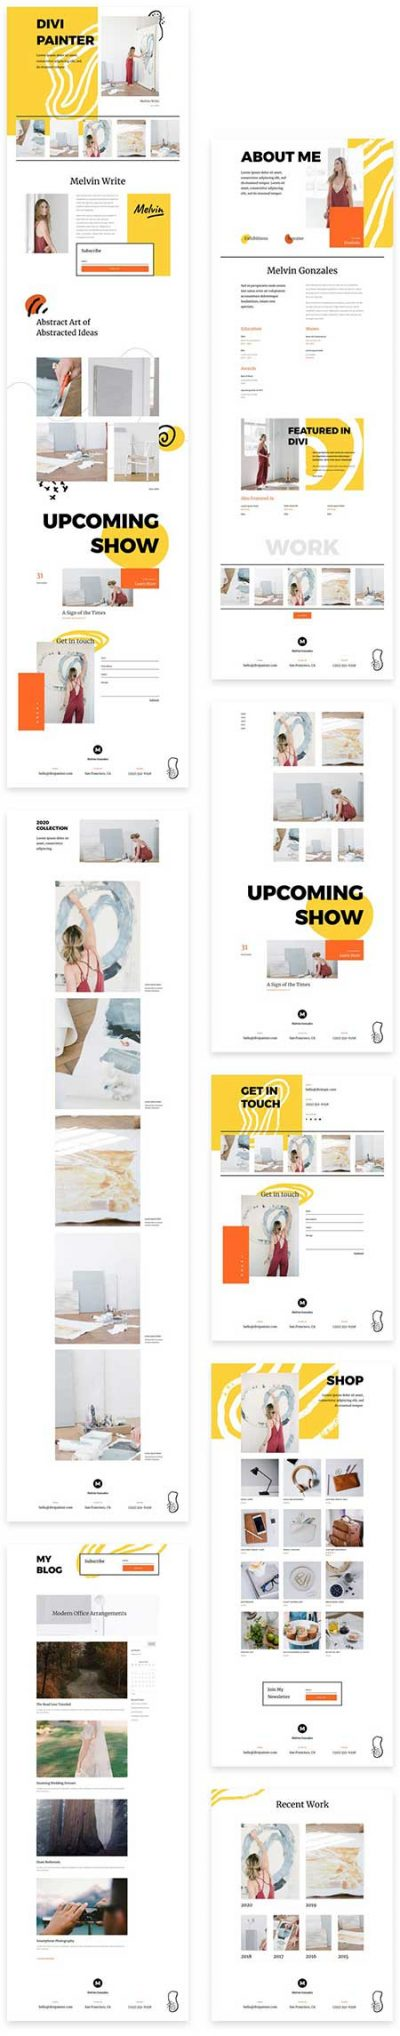 Divi artist painter template